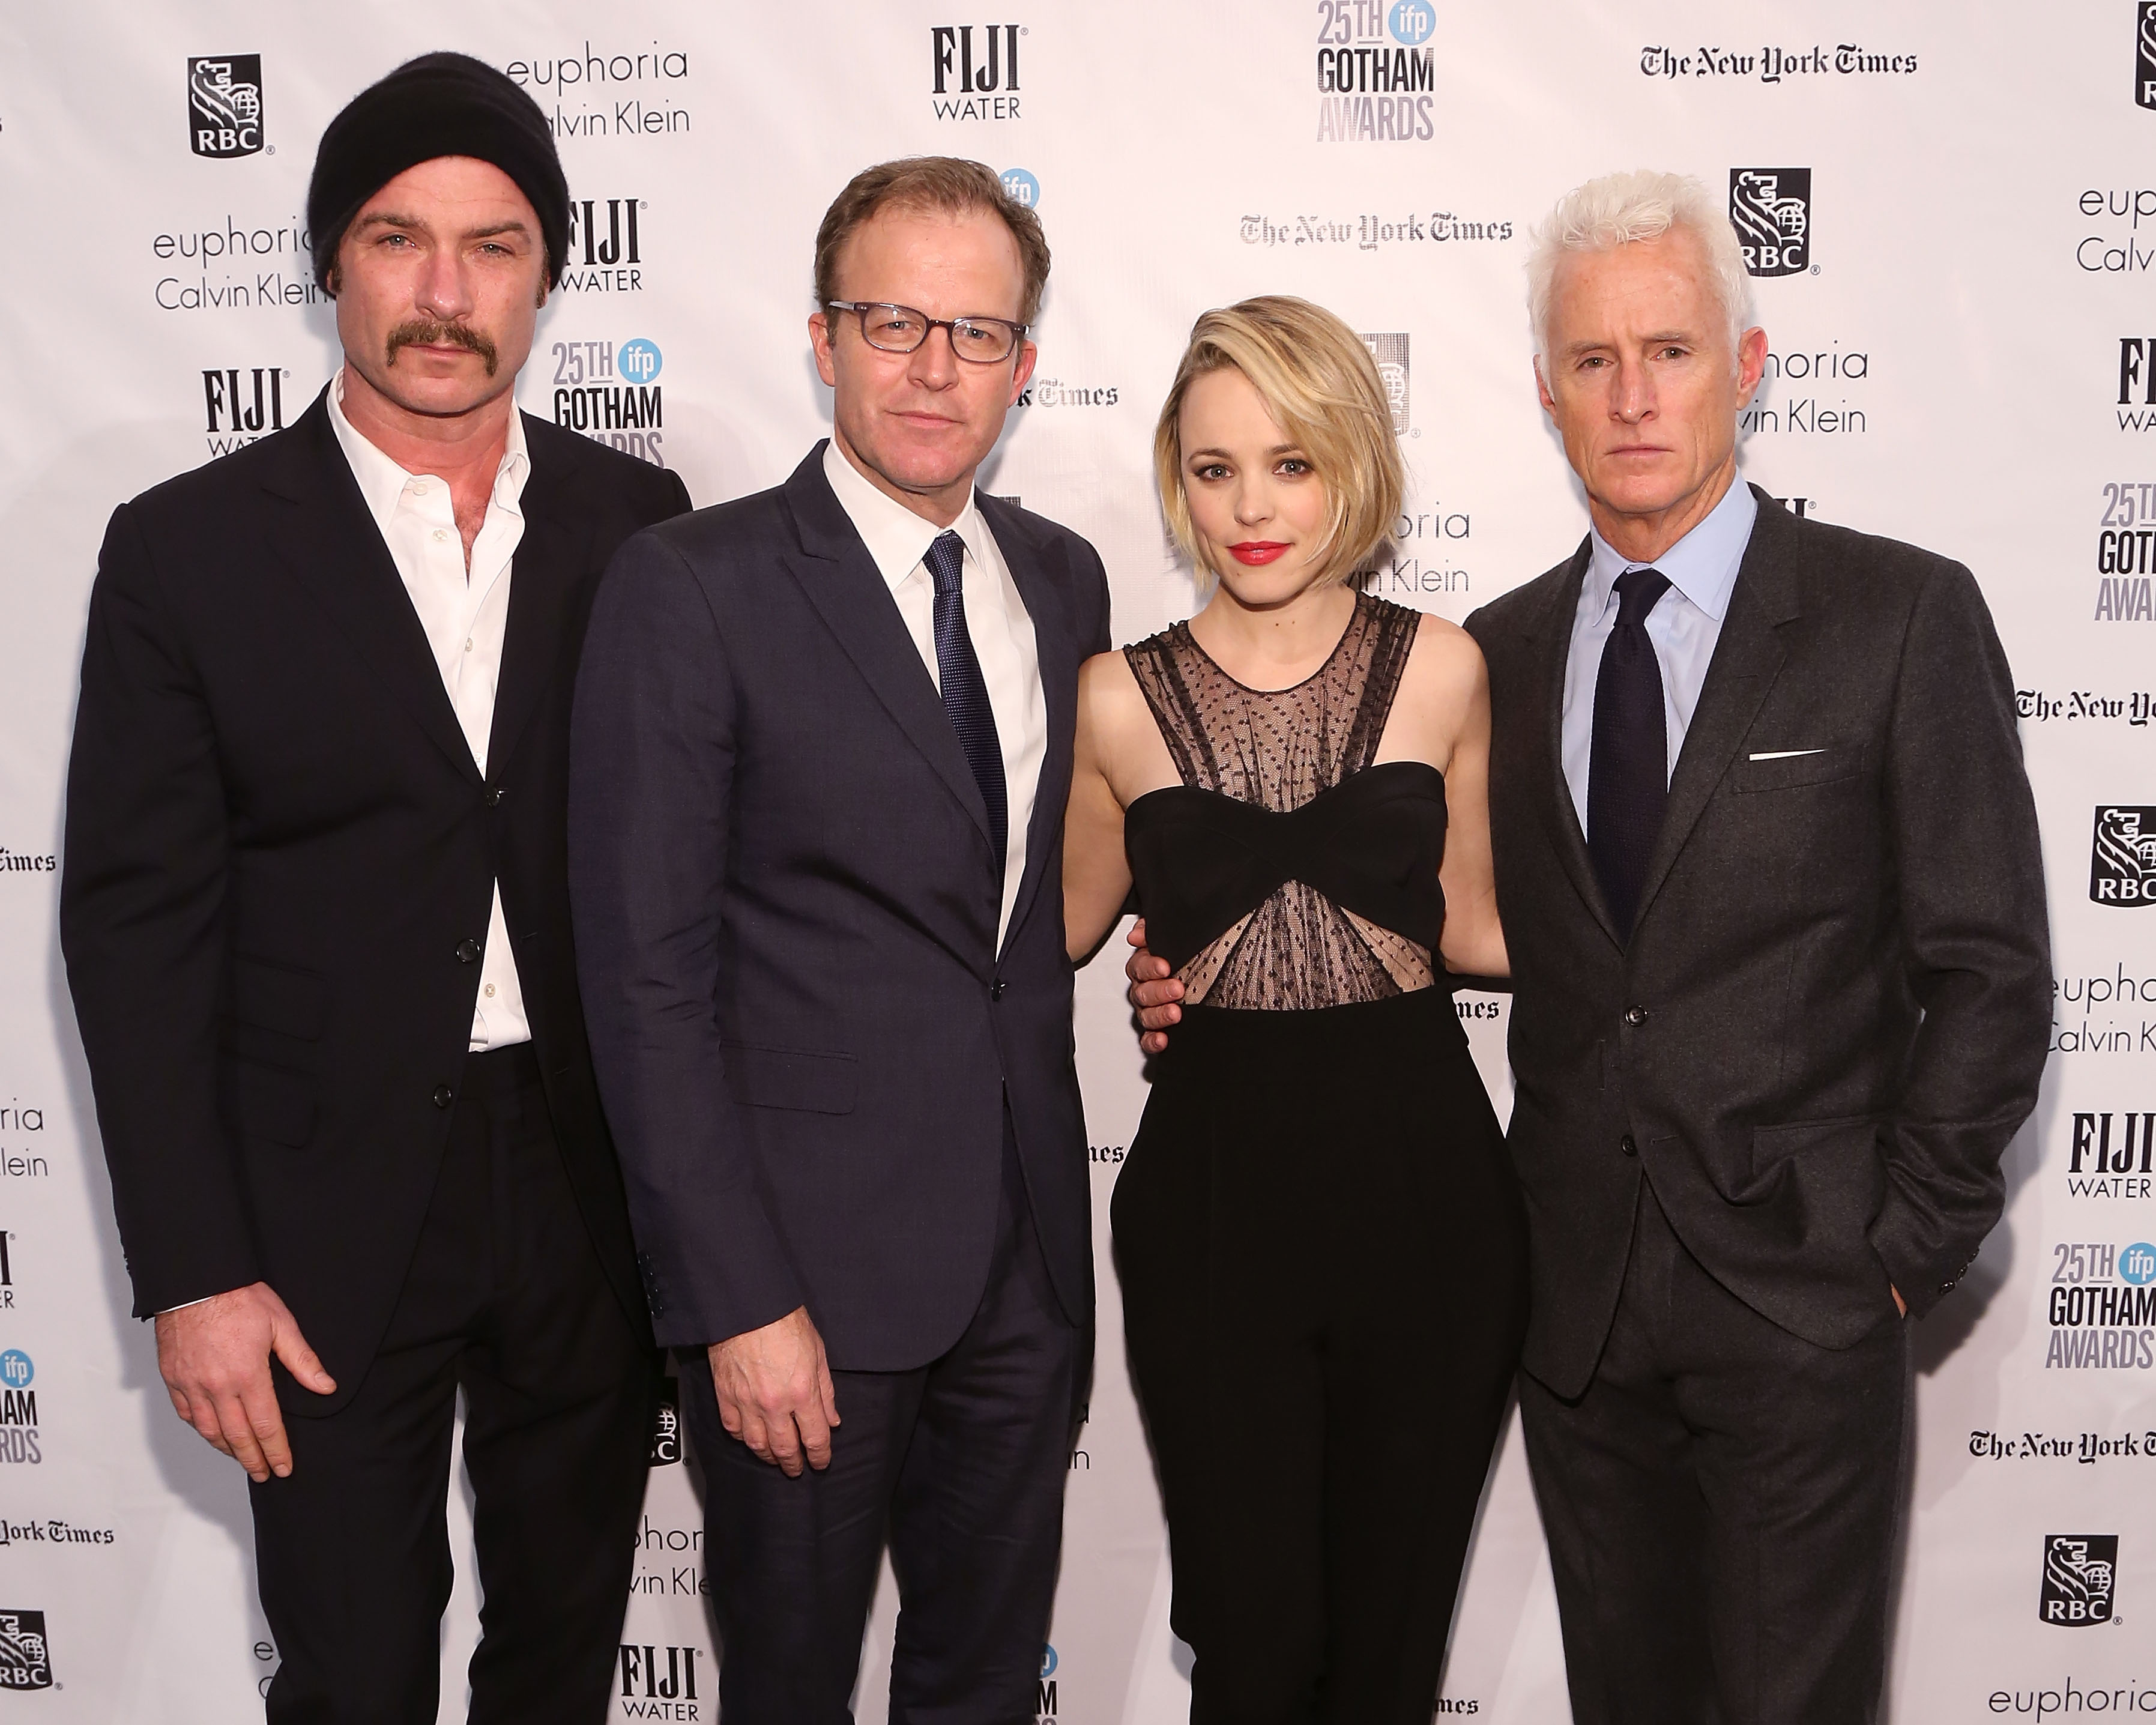 (L-R) Liev Schreiber, Thomas McCarthy, Rachel McAdams, and John Slattery attend the 25th Annual Gotham Independent Film Awards on November 30, 2015 in New York City.